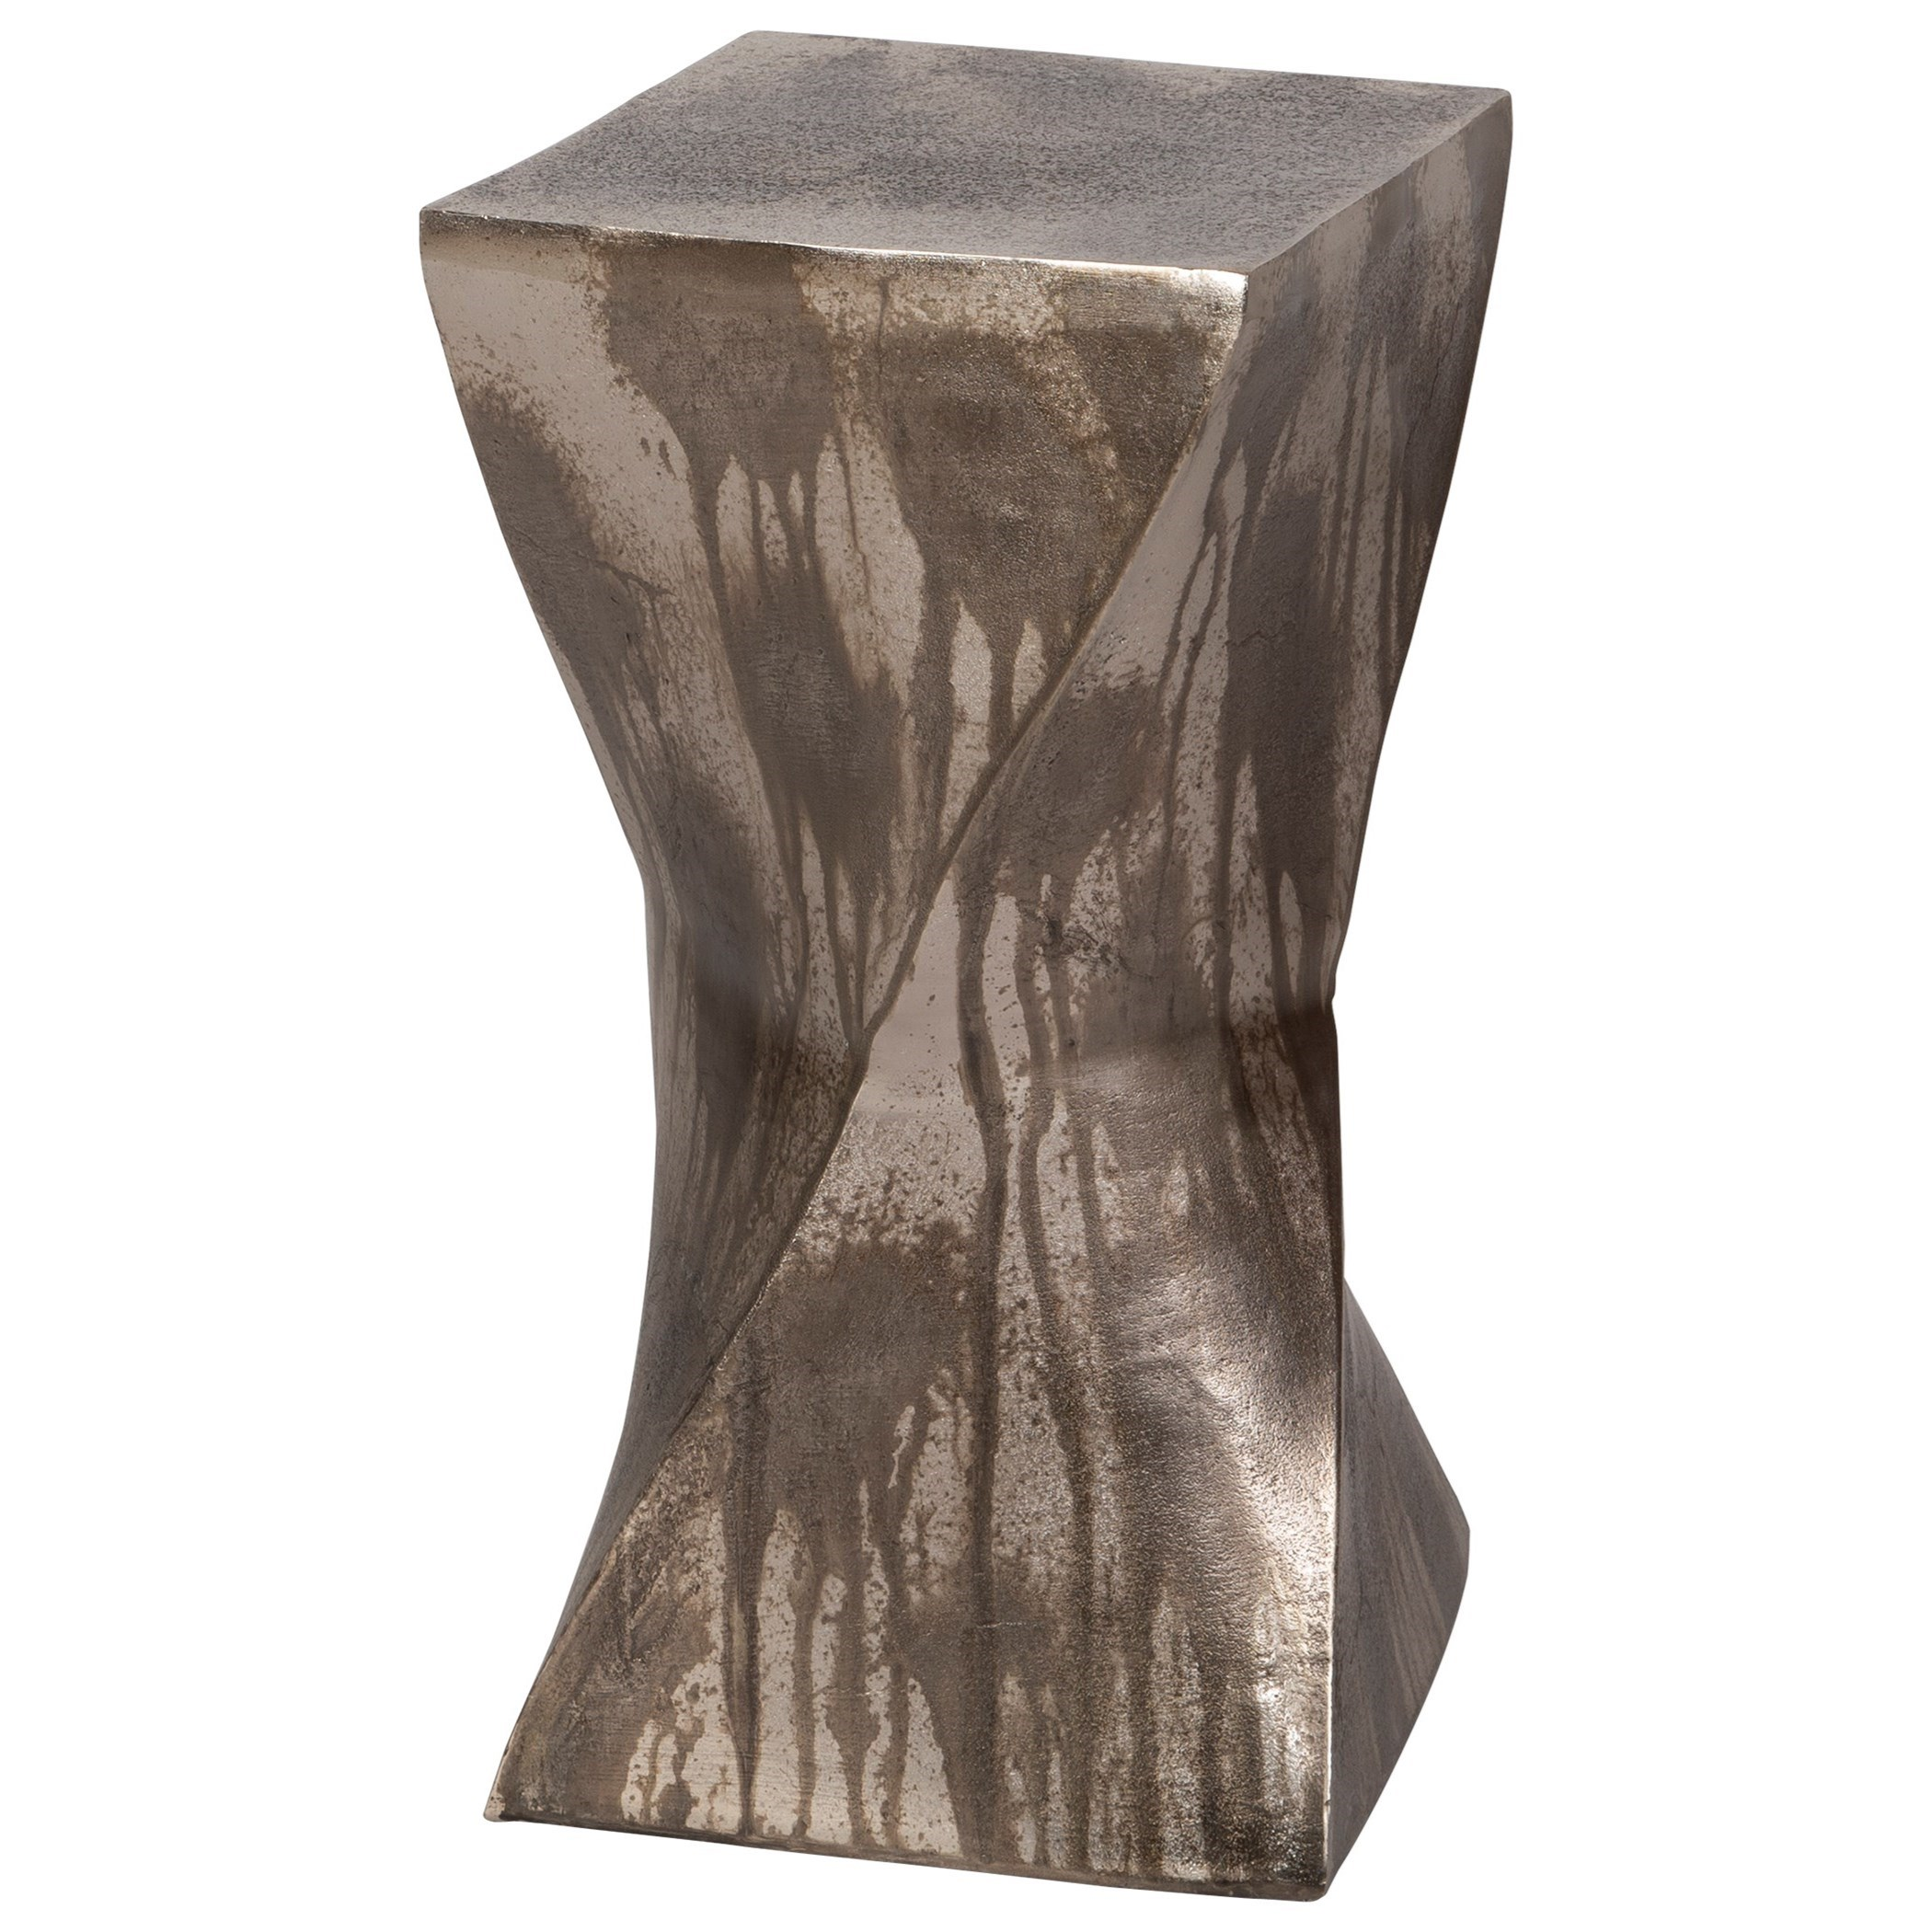 Accent Furniture - Occasional Tables Euphrates Accent Table by Uttermost at Reid's Furniture